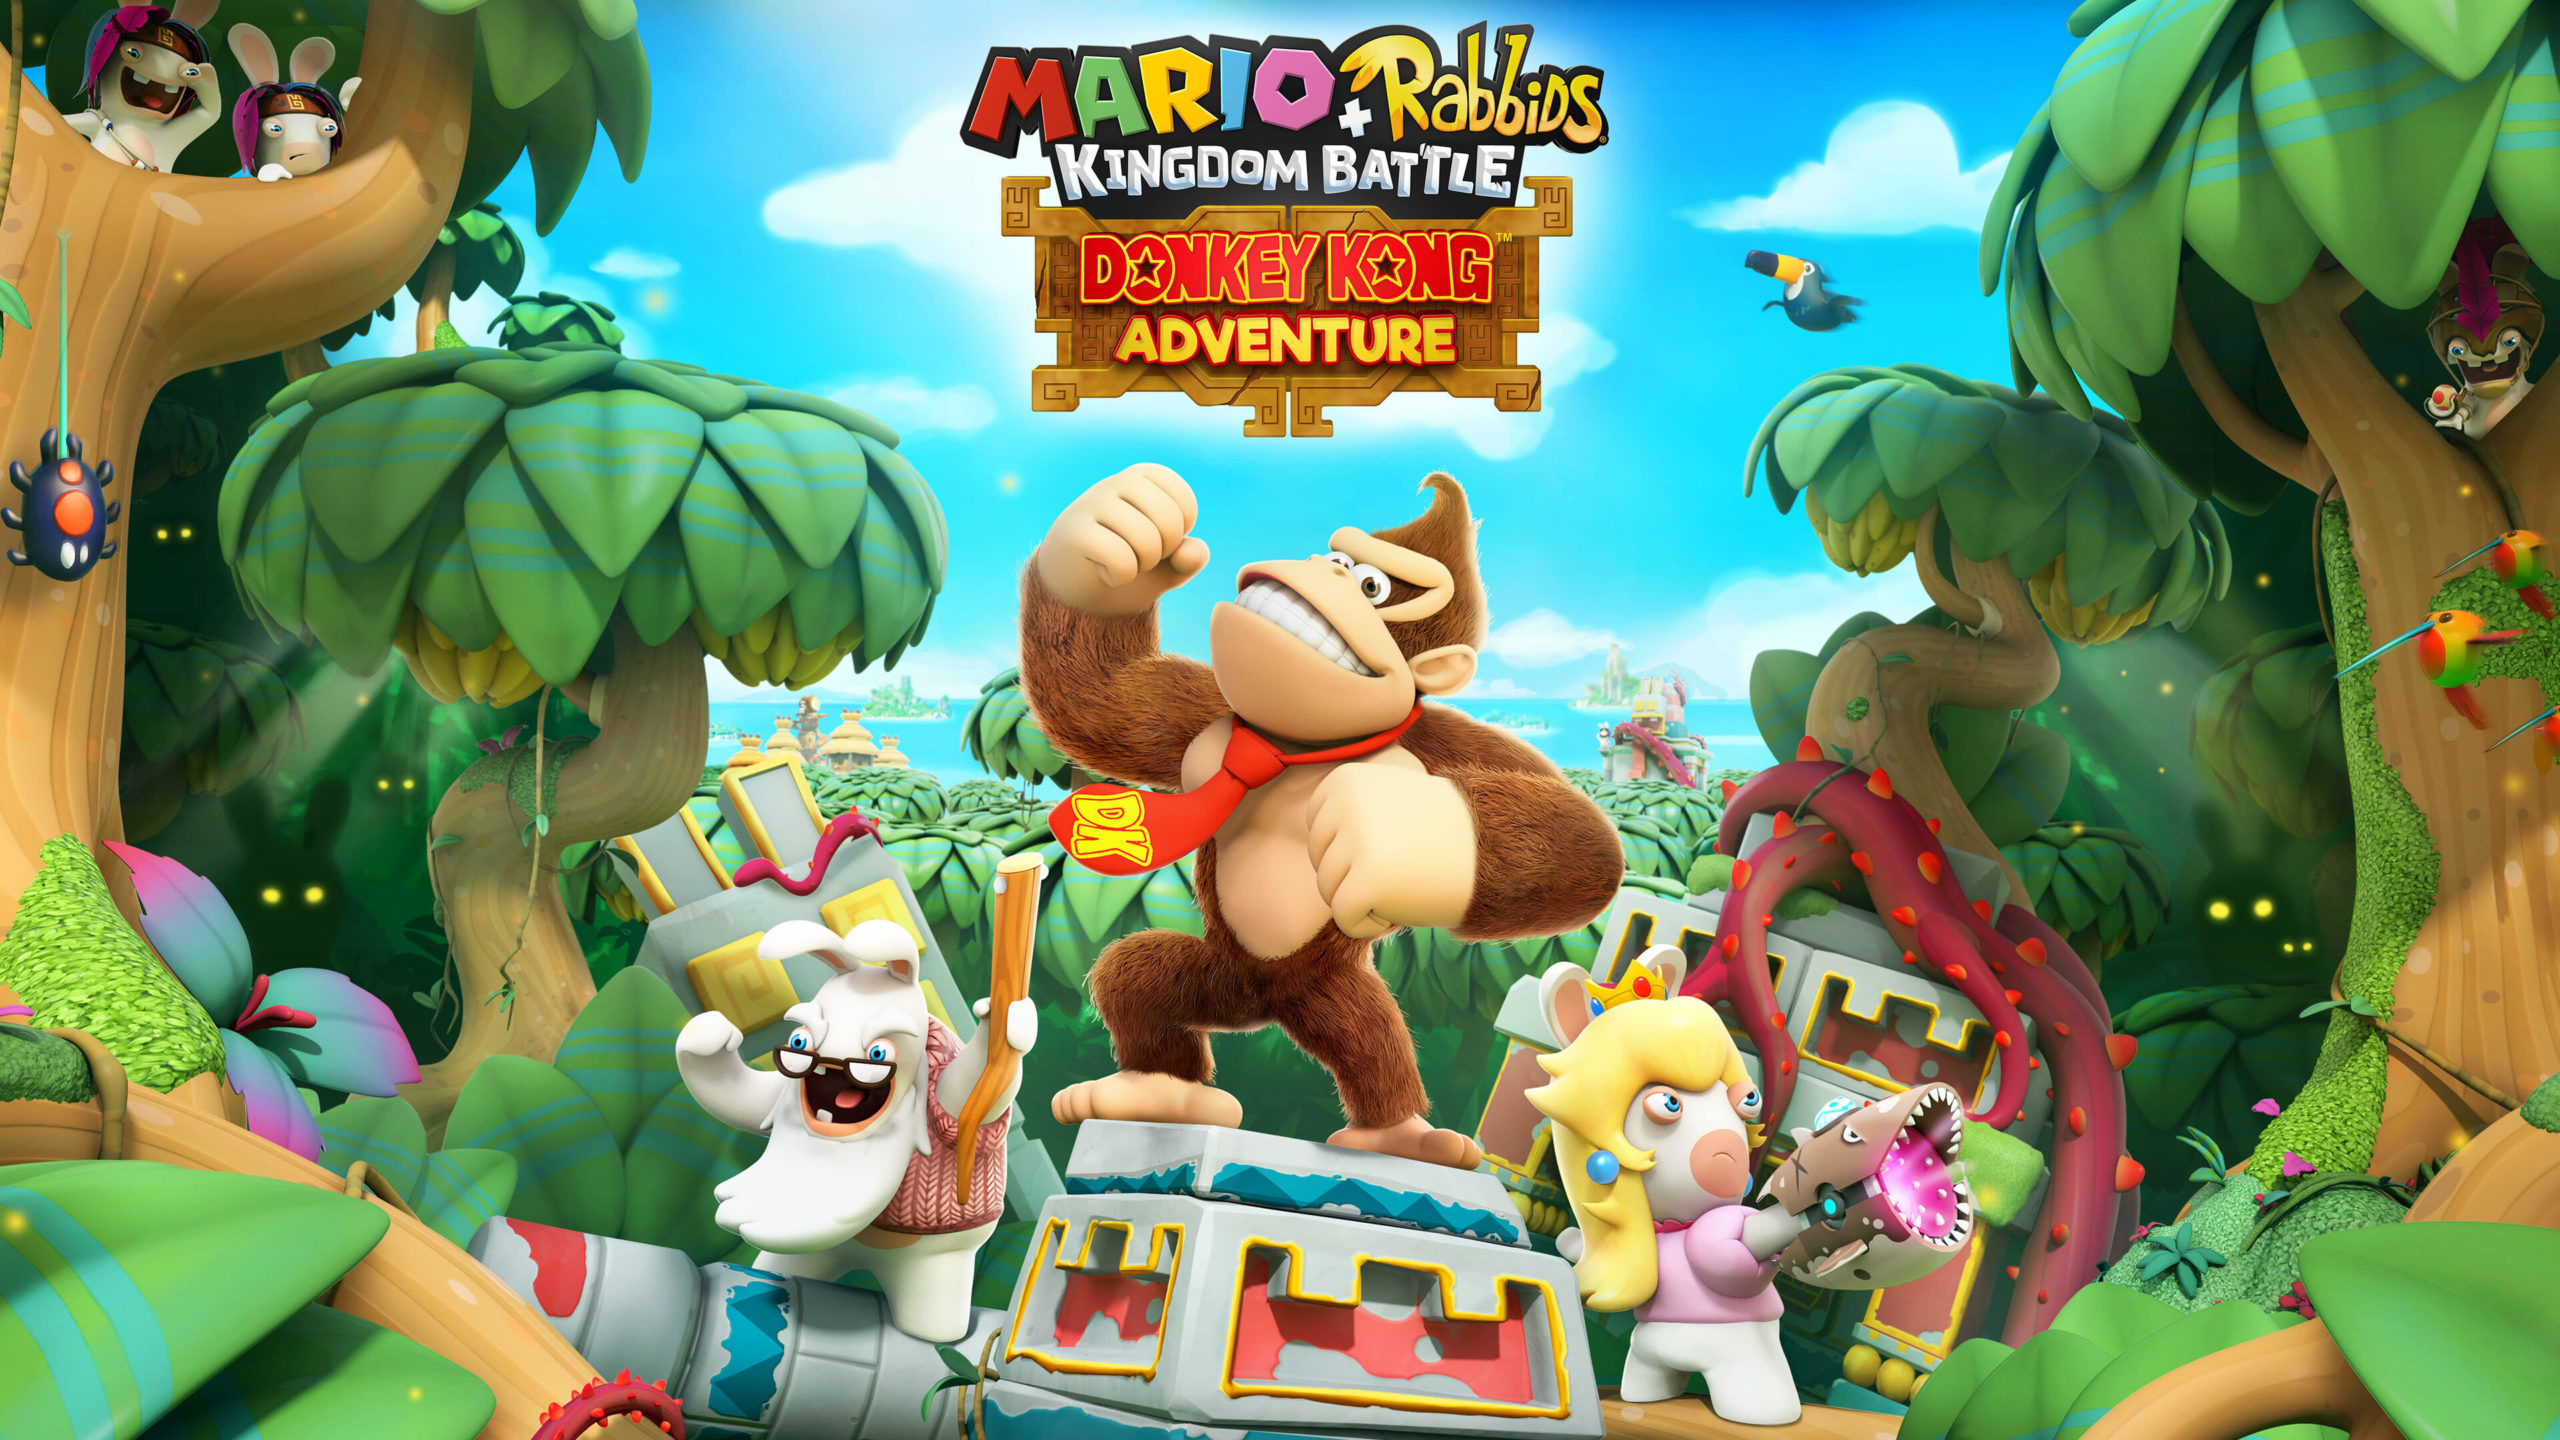 Game Completion 2020 #19 – Donkey Kong Adventure (Mario + Rabbids: Kingdom Battle DLC)